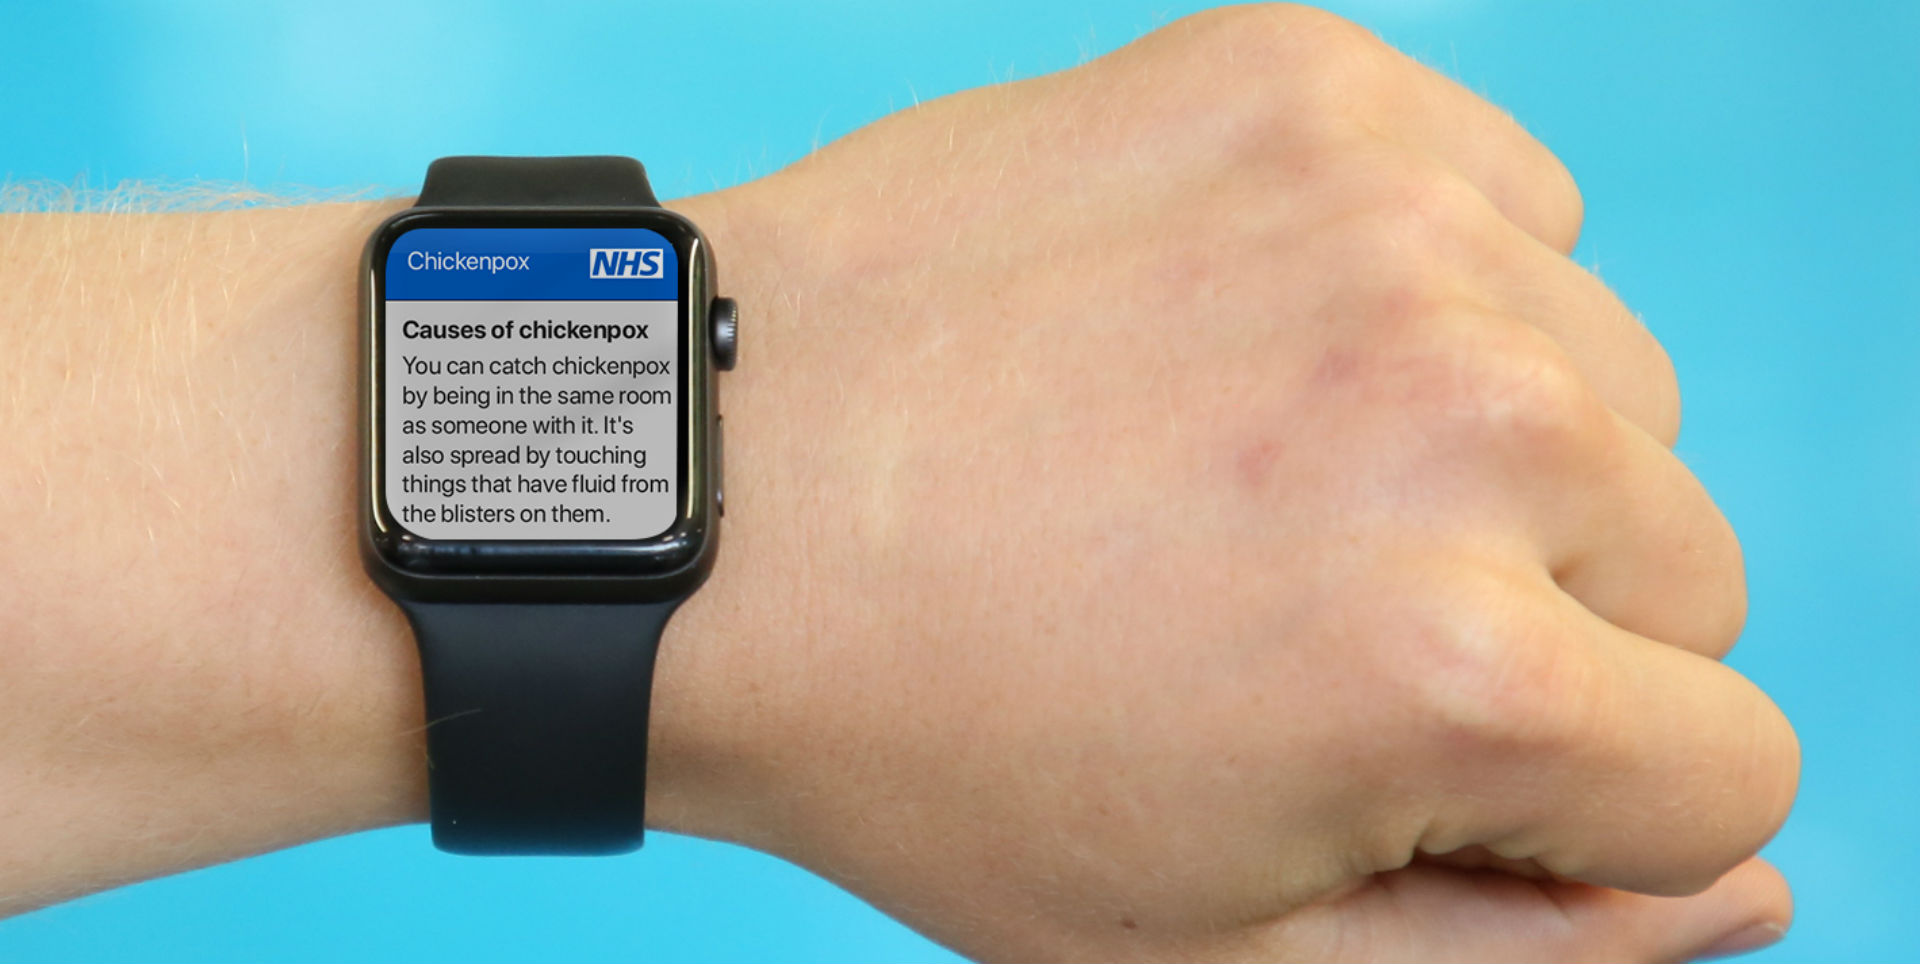 A wearable device with NHS website content